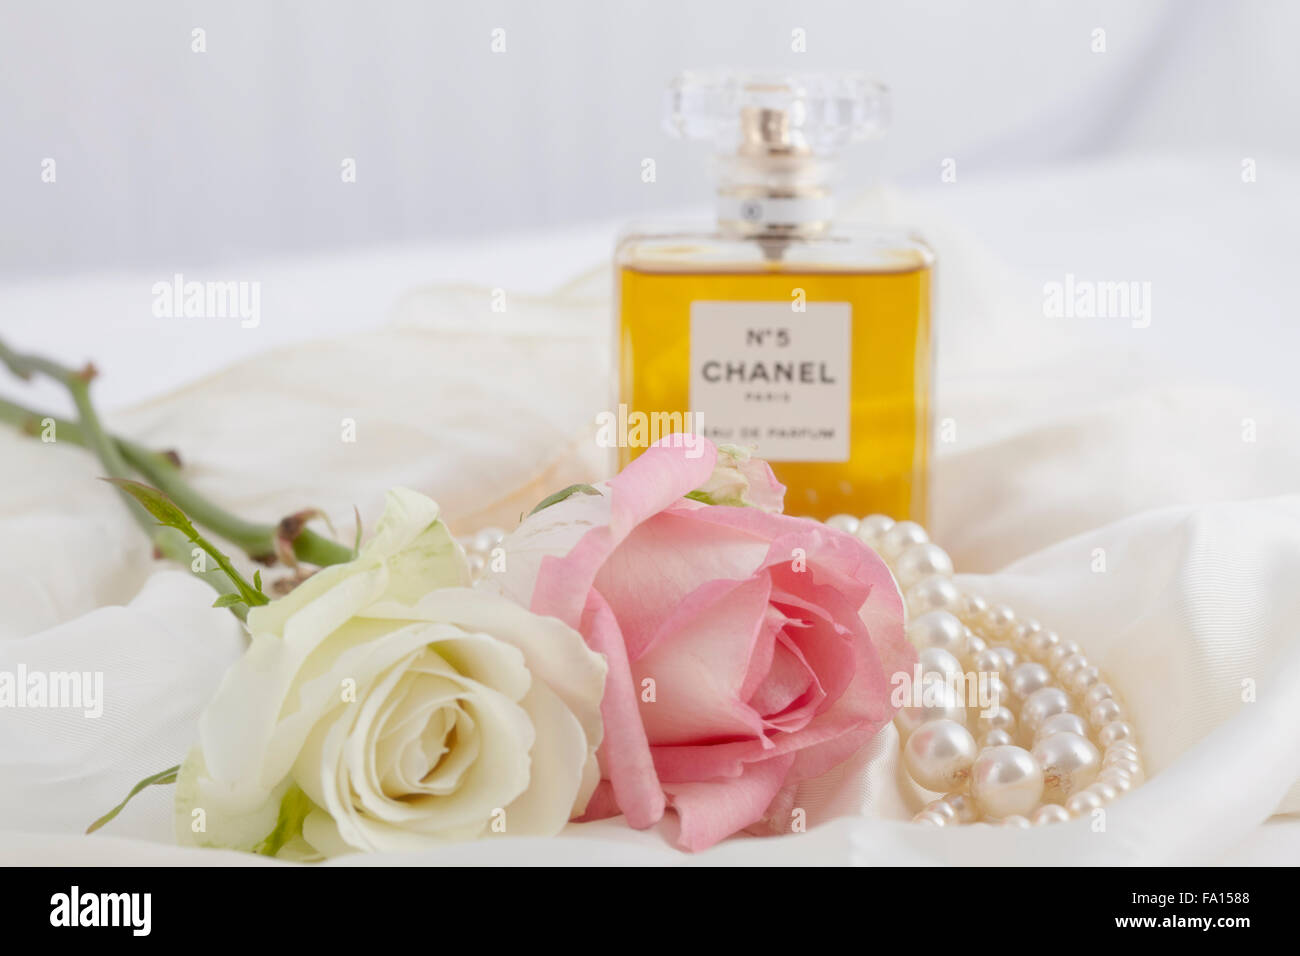 Roses with pearls and Chanel perfume - Stock Image